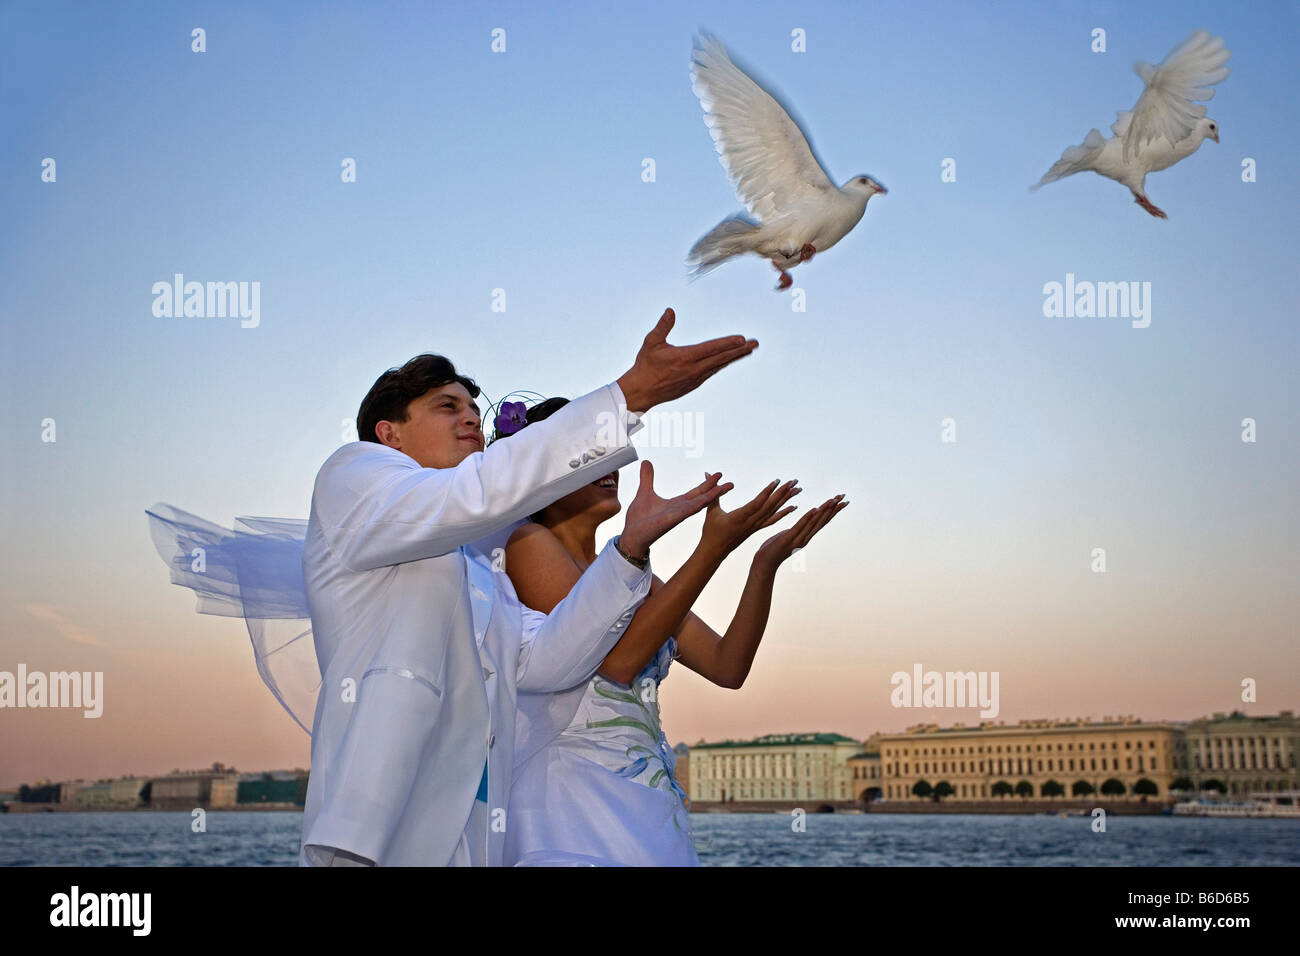 Russia, Saint Petersburg, Neva river. Hermitage background. Couple celebrate their marriage with white pigeon. - Stock Image